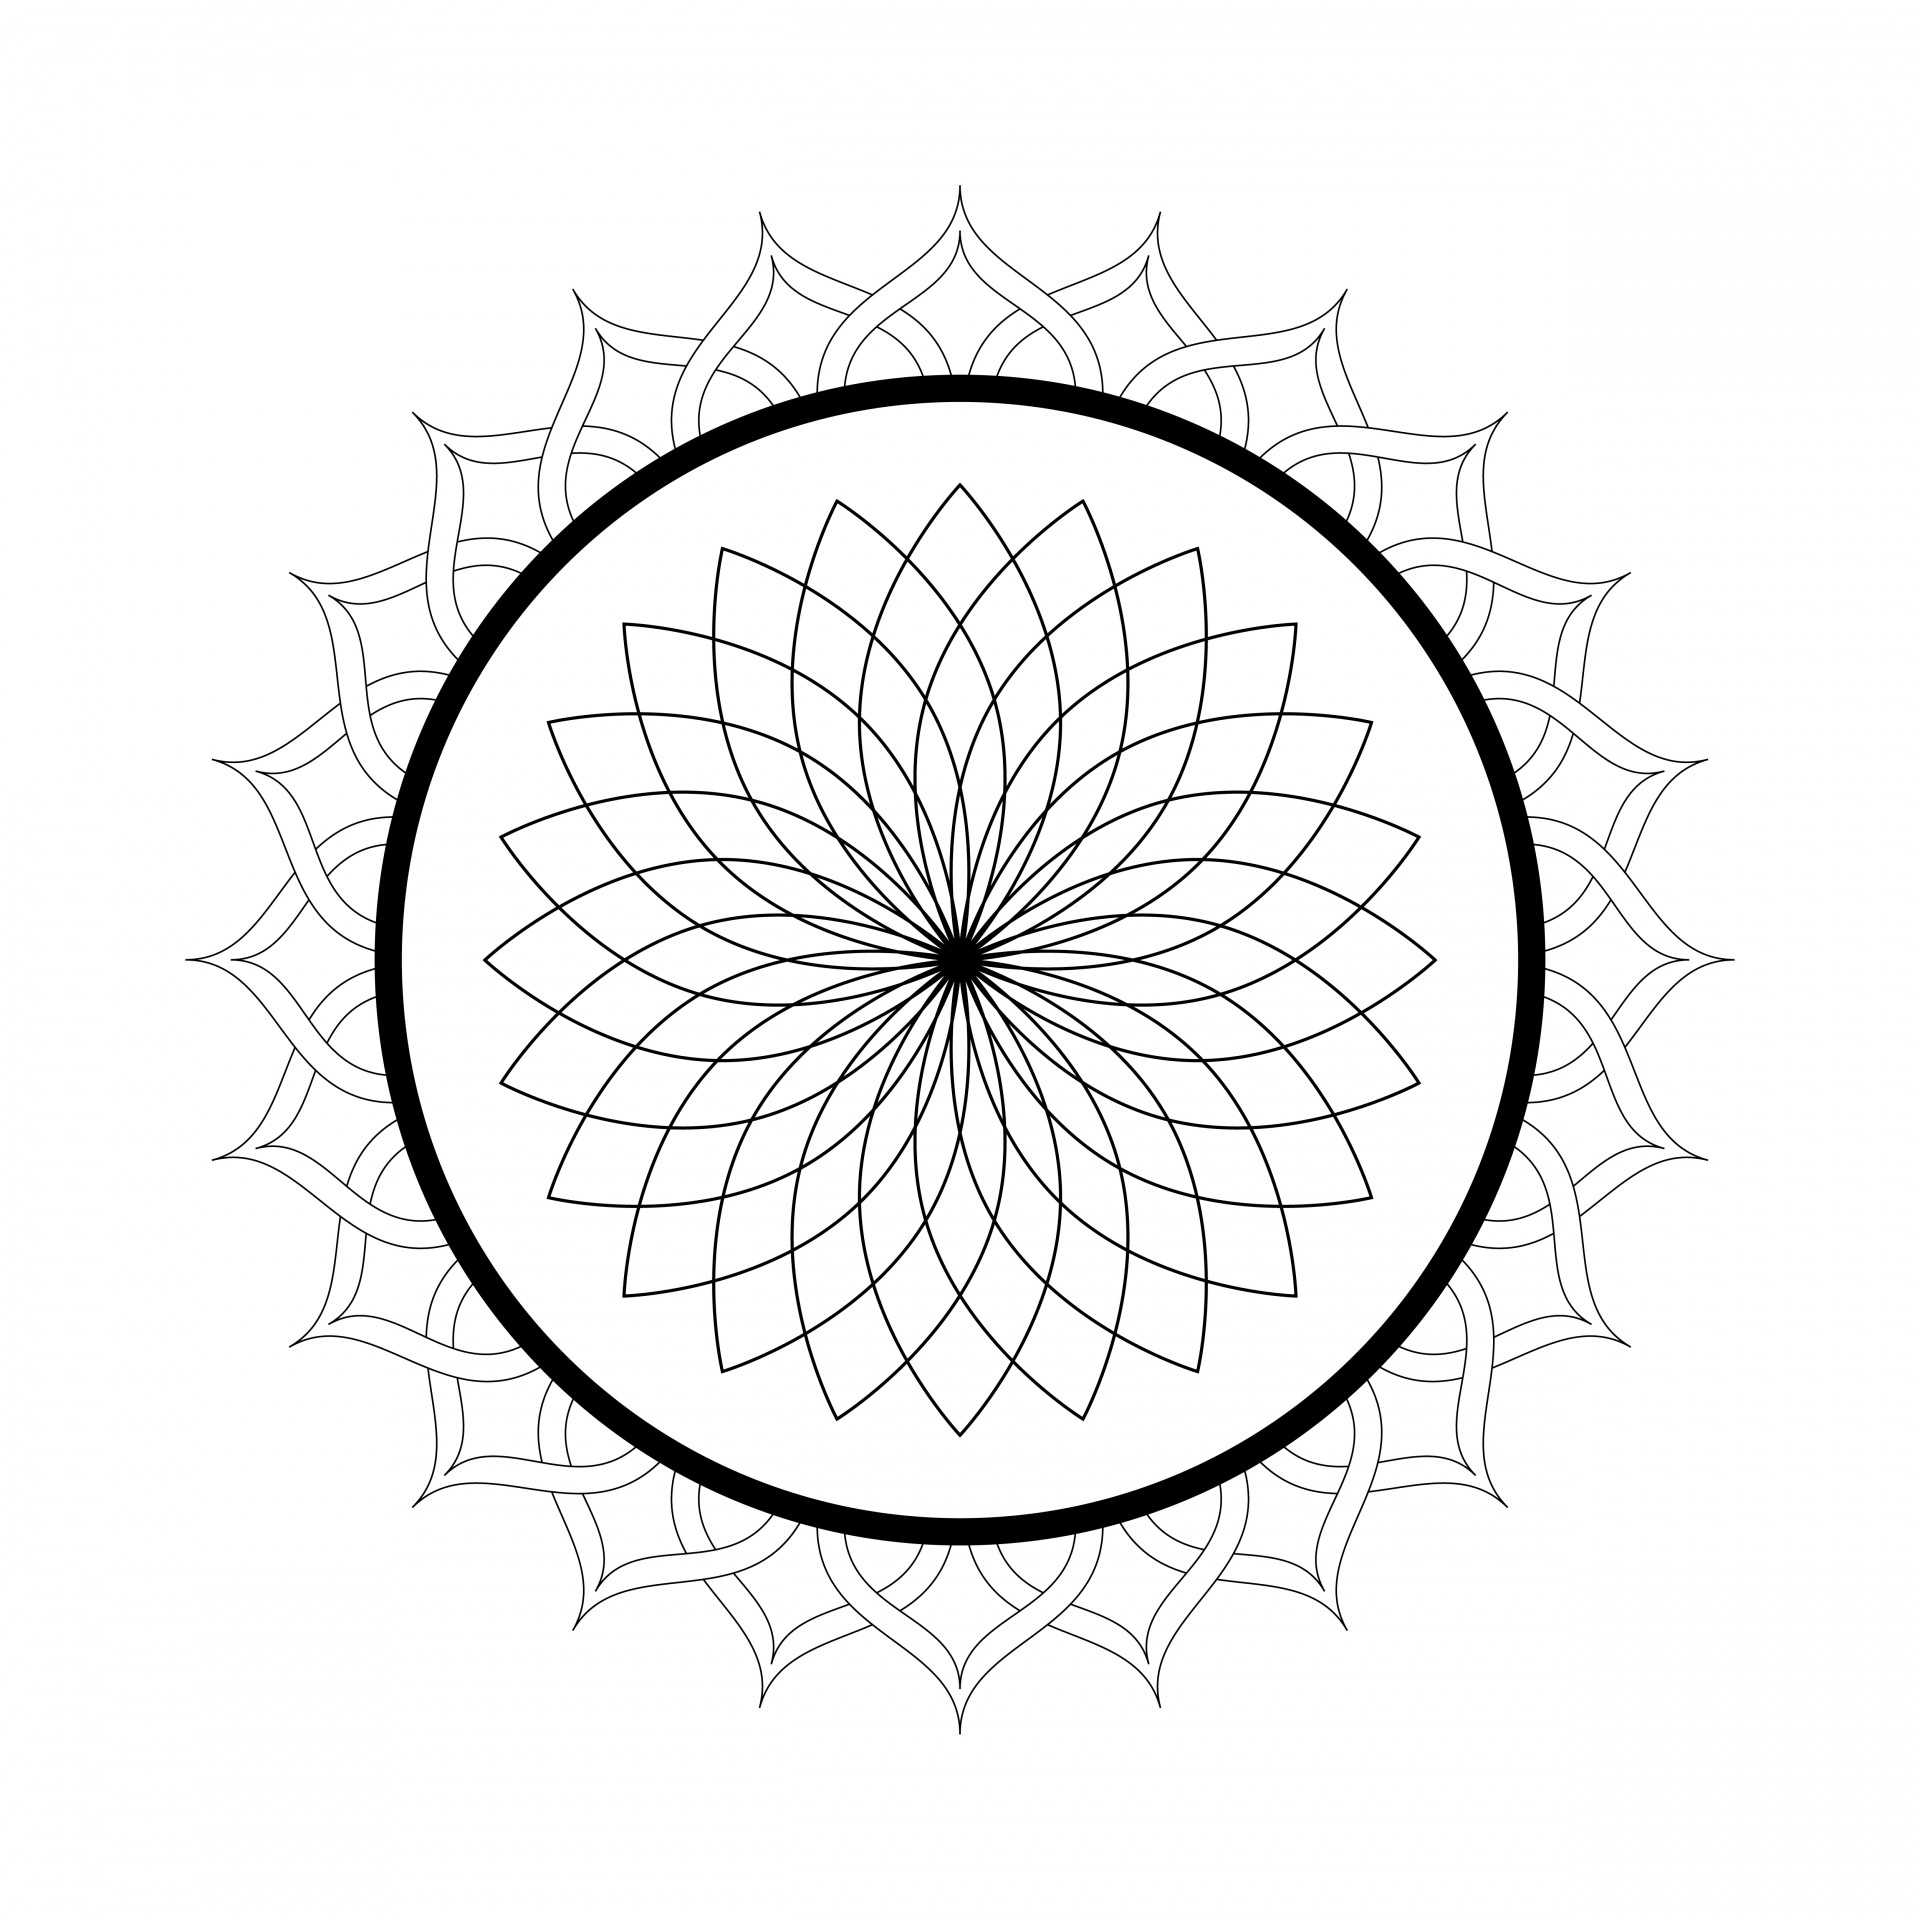 printable mandalas to color don39t eat the paste sun mandala to print and color printable mandalas color to